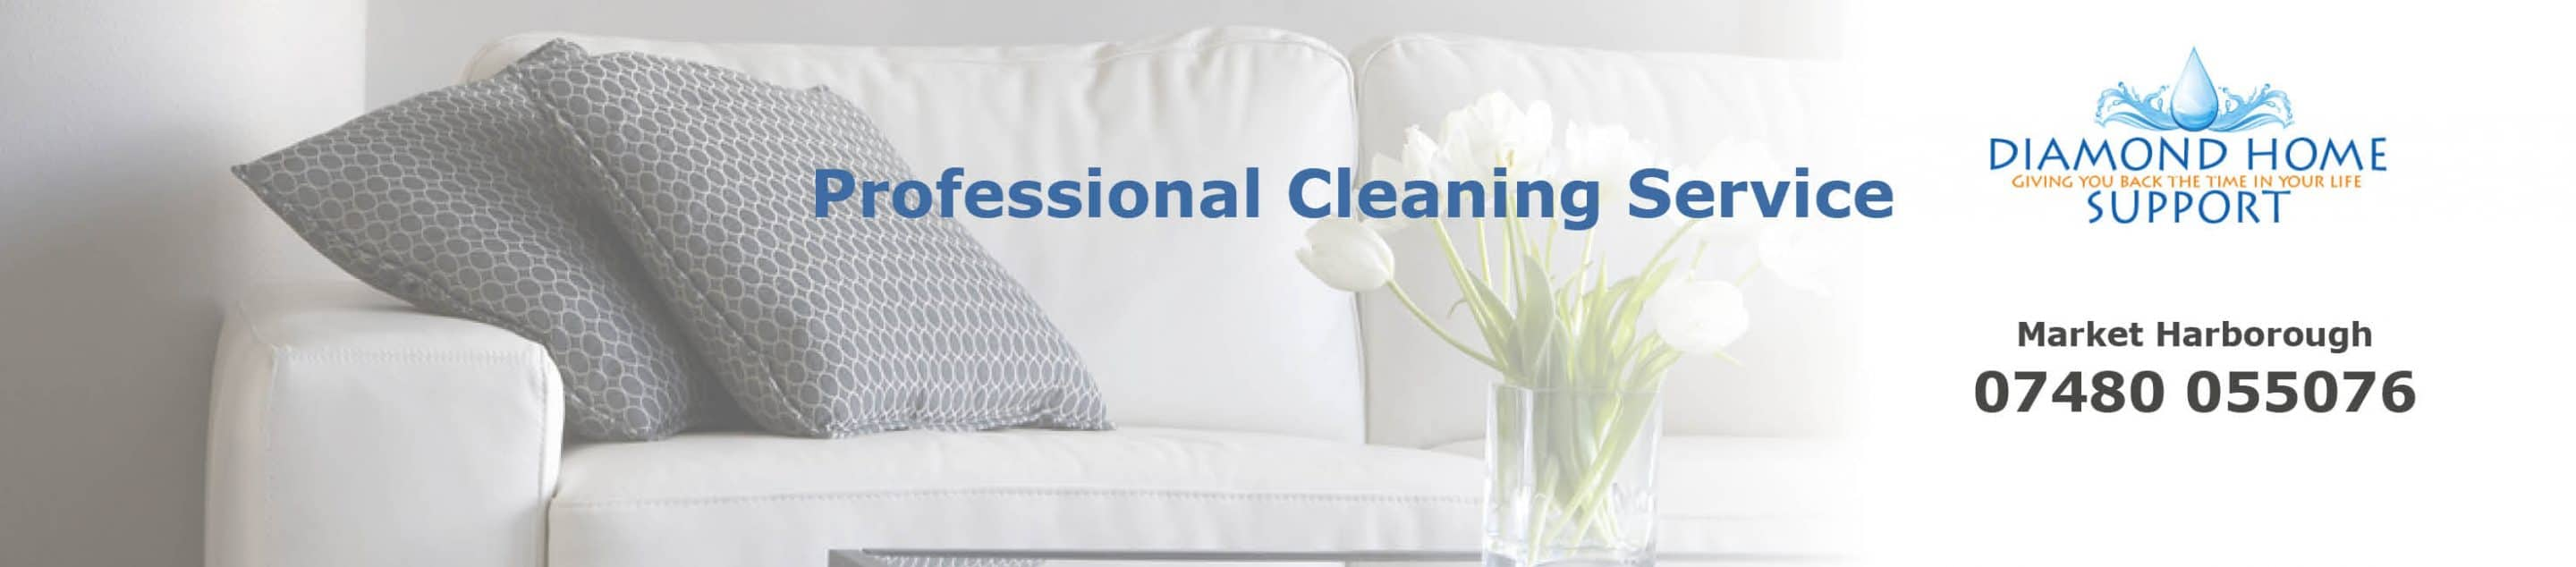 Cleaners in Market Harborough